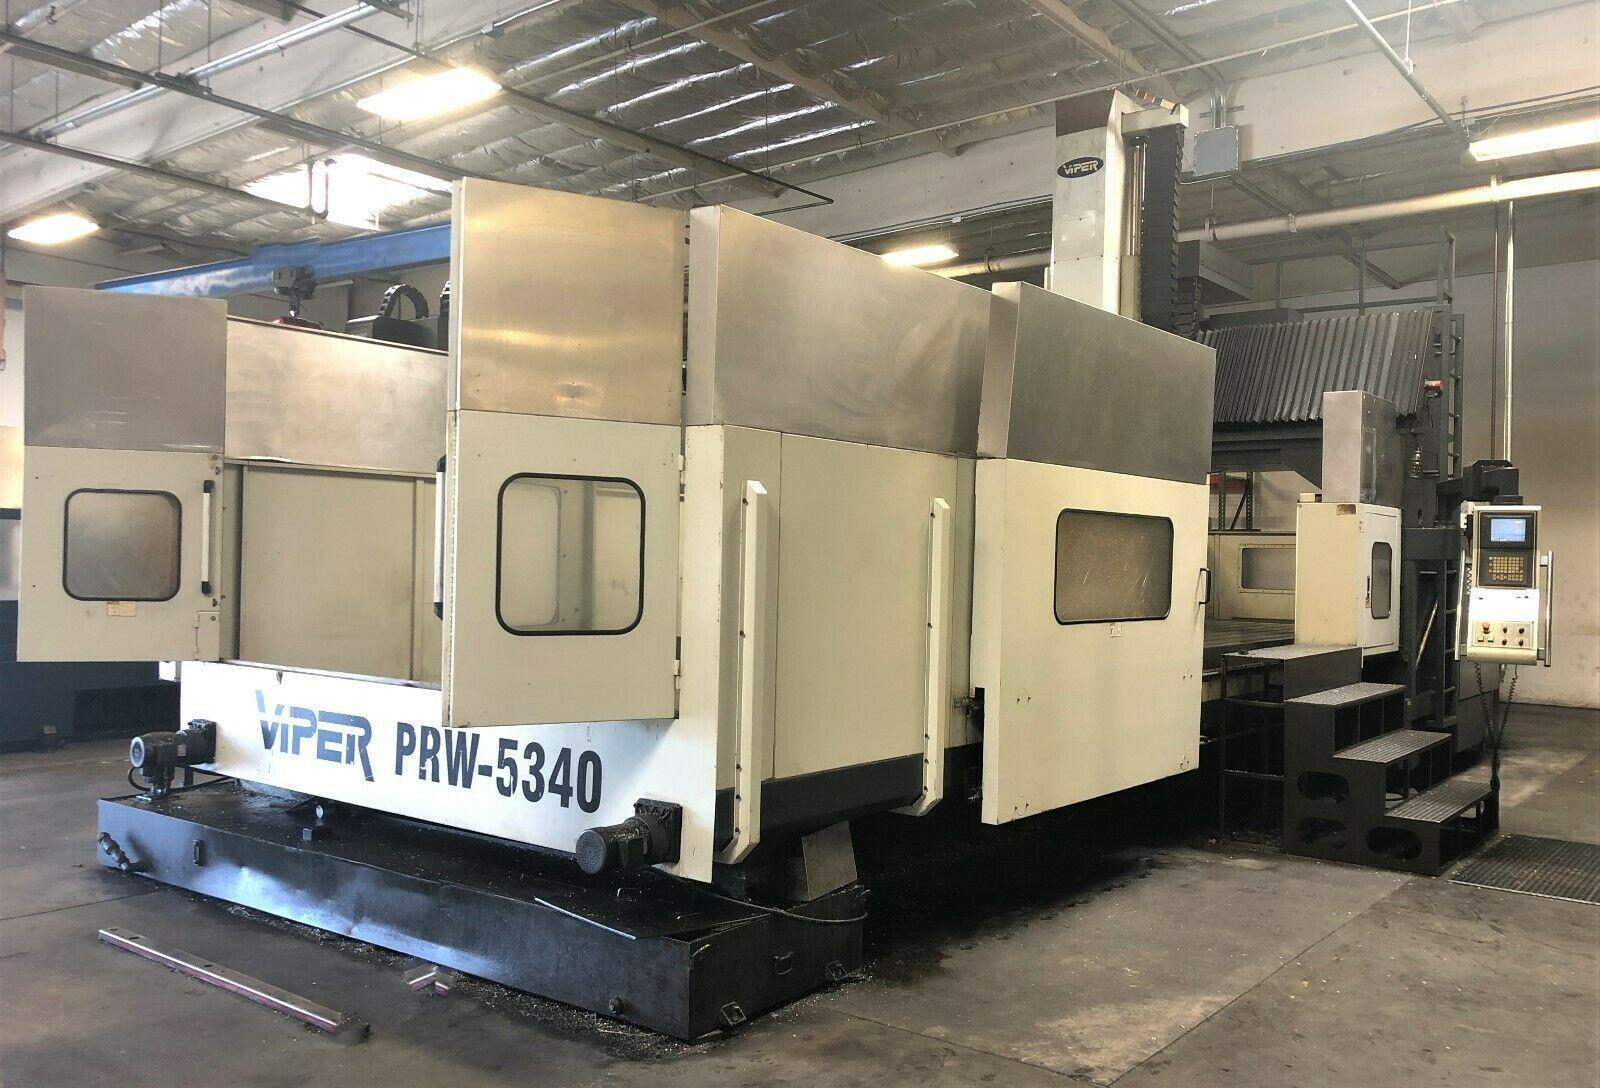 """MIGHTY VIPER PRW-5340 BRIDGE STYLE CNC VERTICAL MACHINING CENTER, Fanuc 21i CNC Control, 205"""" x 118"""" Table, X=200"""", Y=134"""", Z=42"""", 6000 Max Spindle RPM, 50 Taper, 60 ATC, New 2008."""